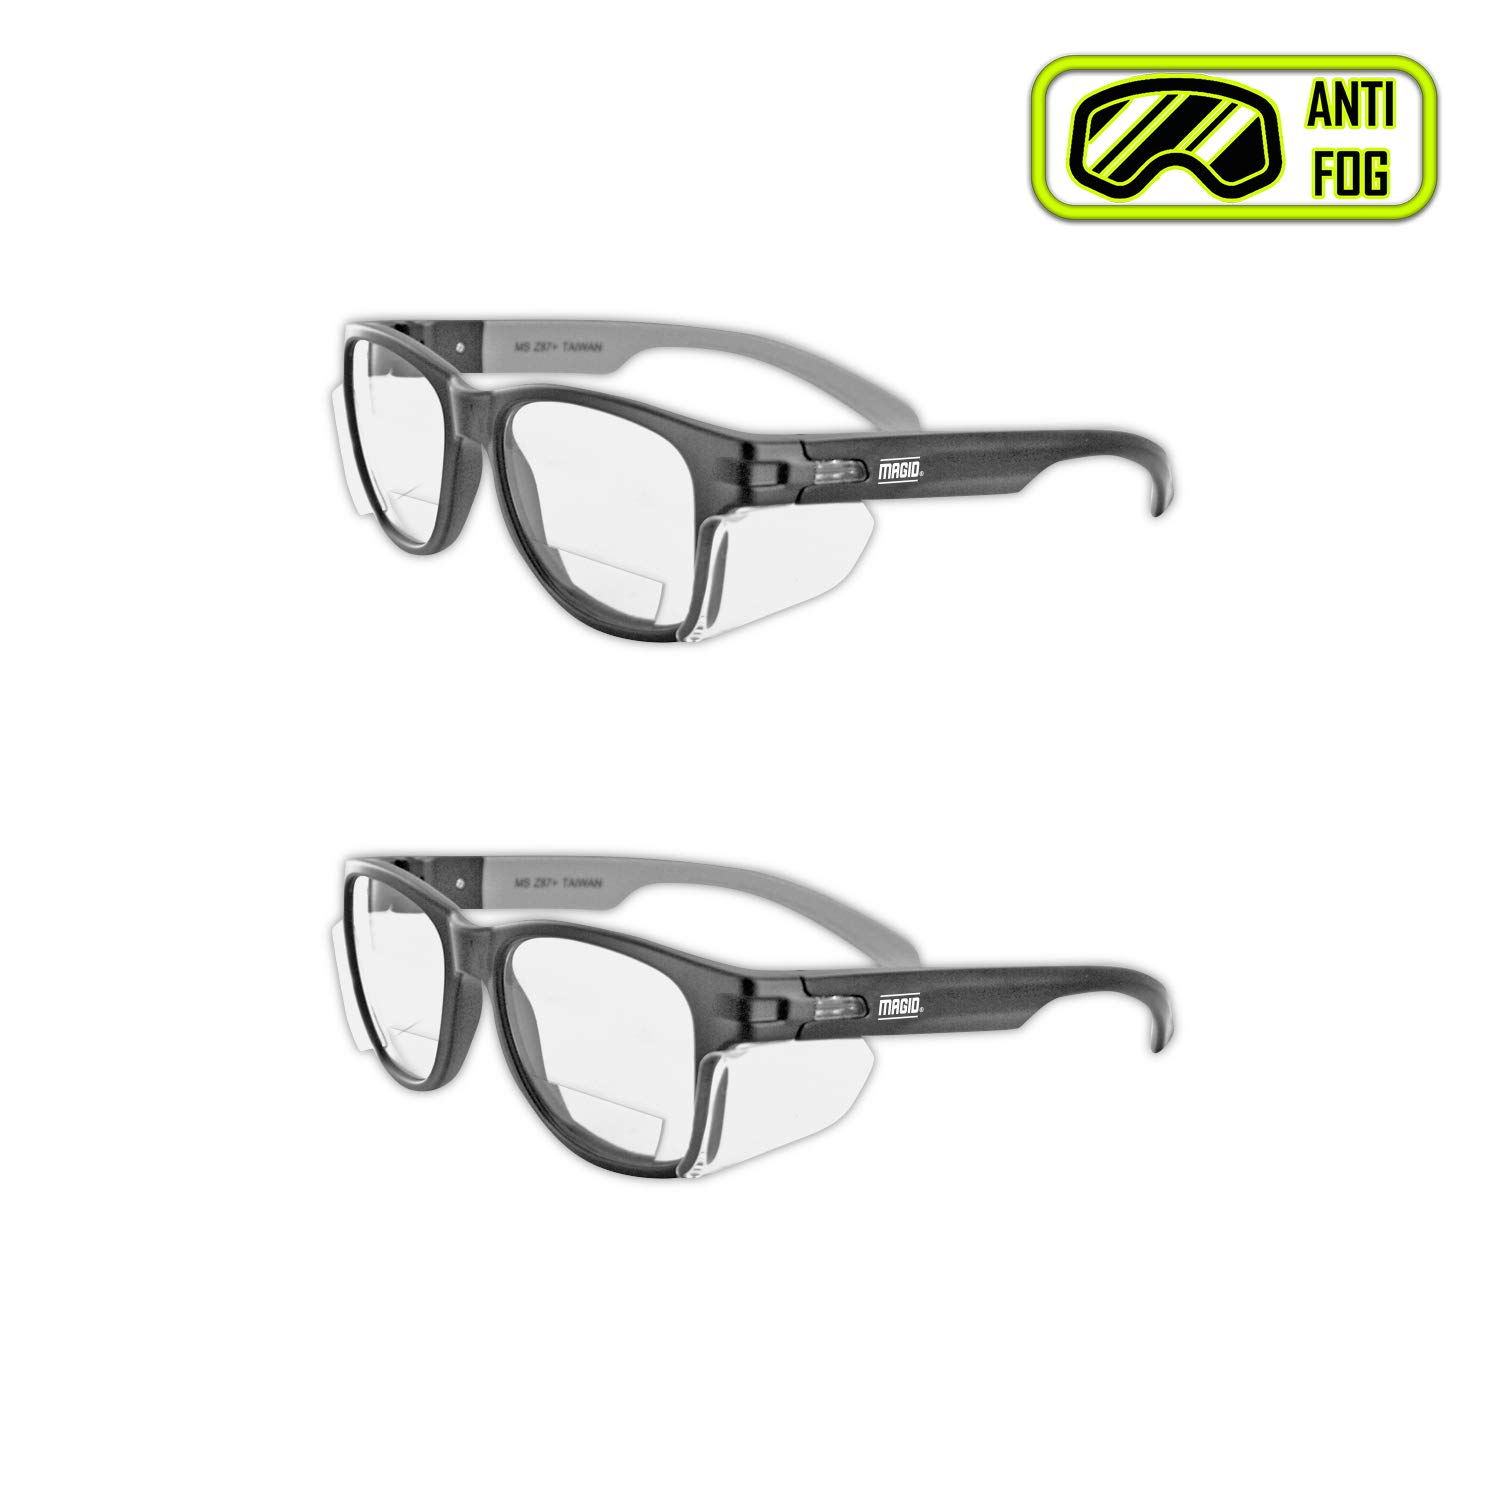 MAGID Y50BKAFC15 Iconic Y50 Design Series Safety Glasses with Side Shields | ANSI Z87+ Performance, Scratch & Fog Resistant, Comfortable & Stylish, Cloth Case Included, +1.5 BiFocal Lens (2 Pair) by Magid Glove & Safety